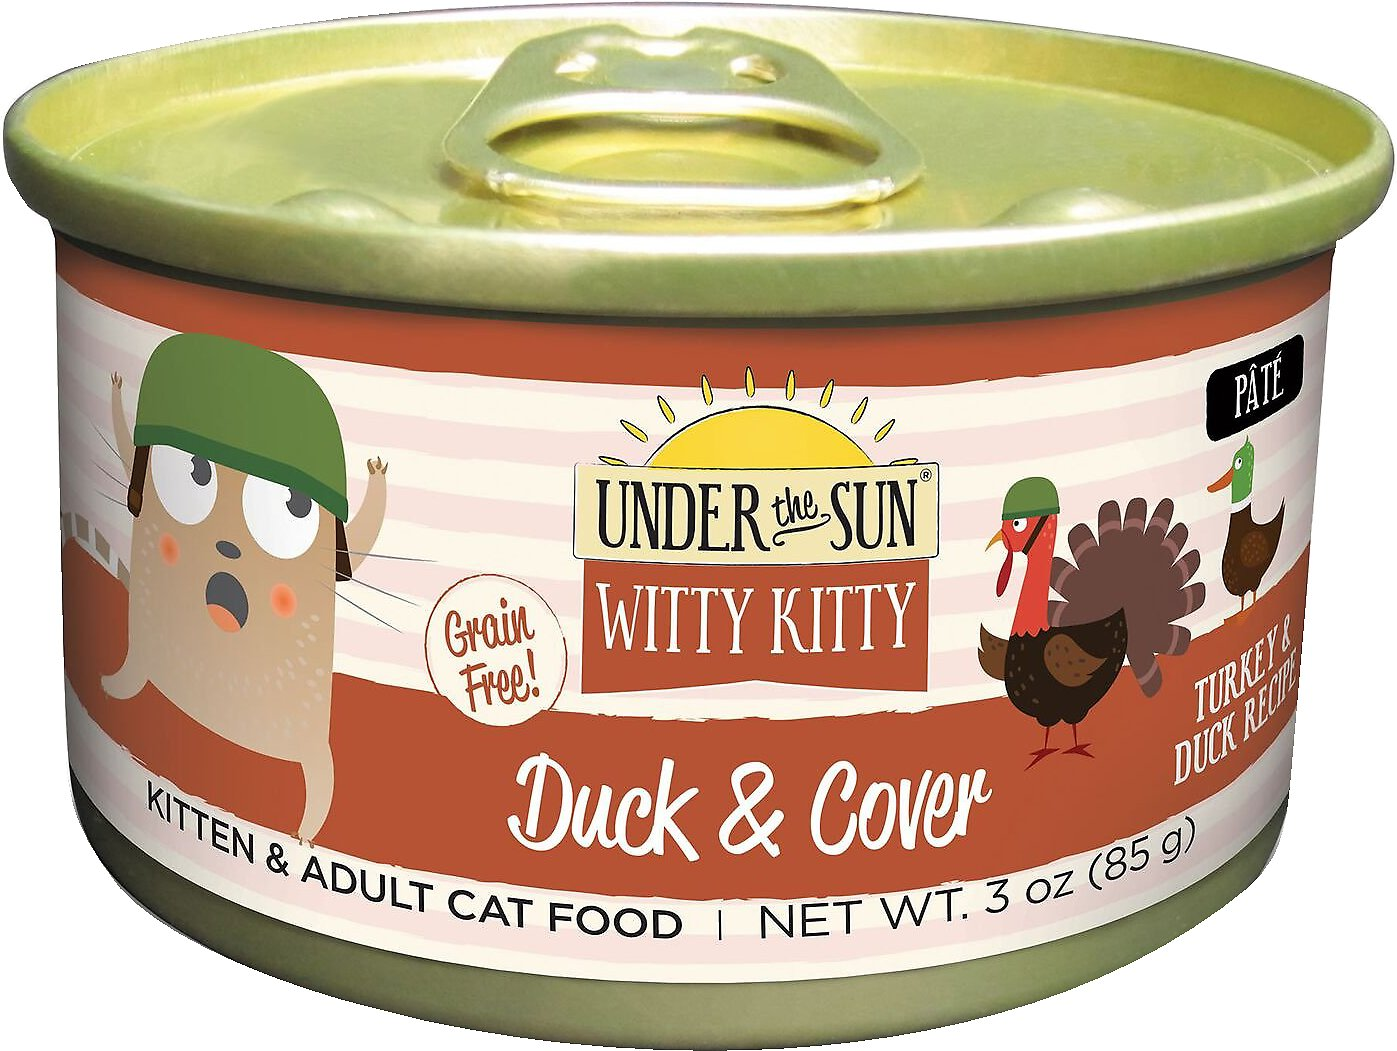 Under the Sun Witty Kitty Duck & Cover Grain-Free with Turkey & Duck Canned Cat Food, 3-oz